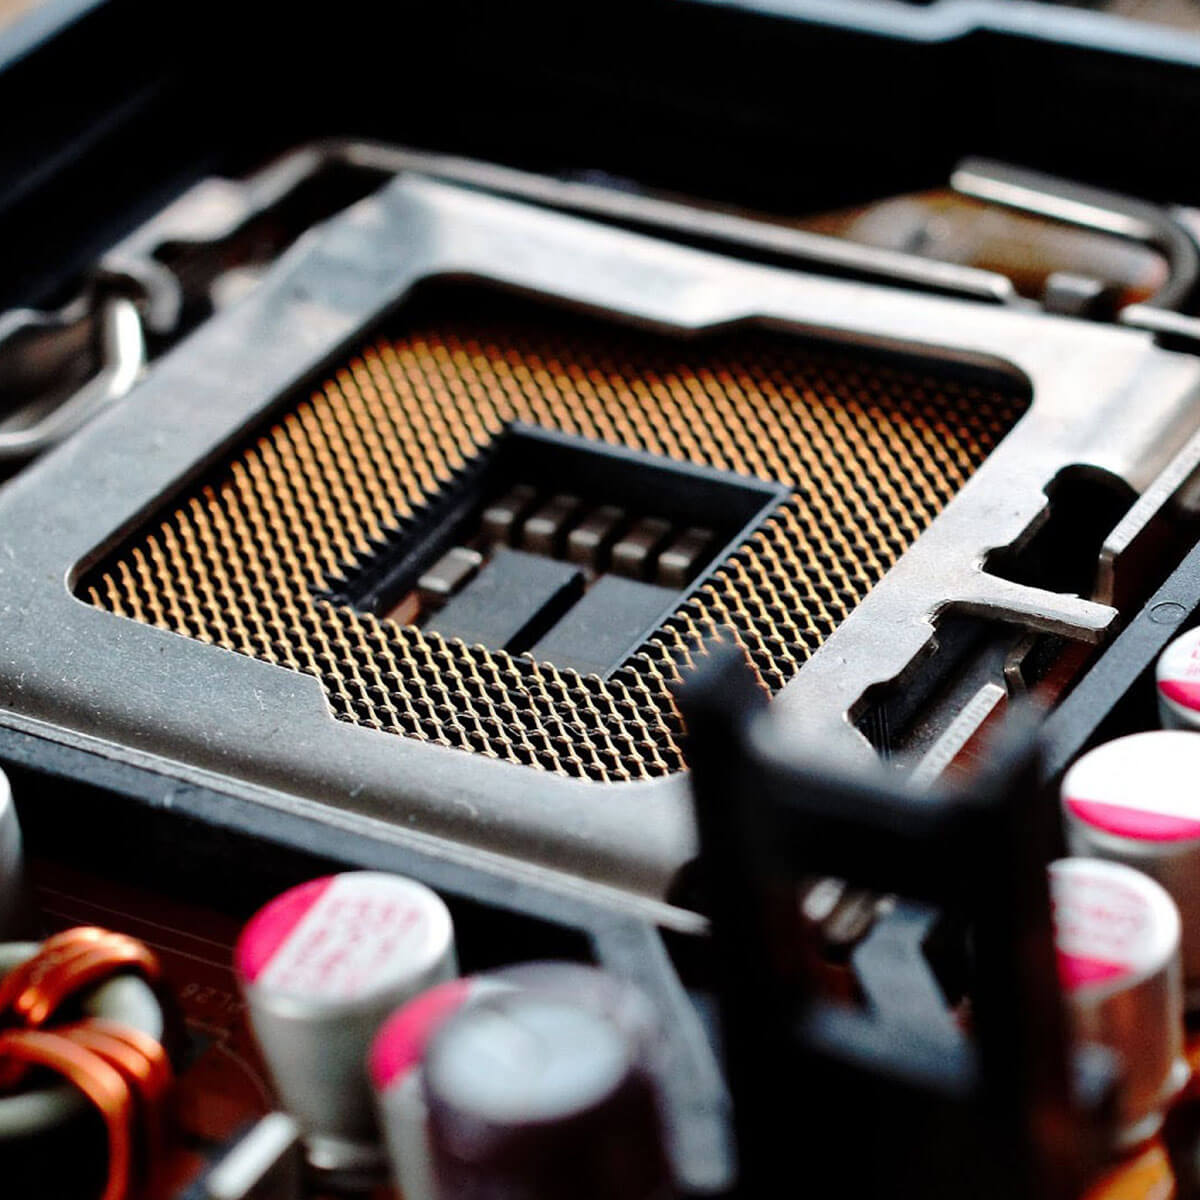 Installing a new cpu on motherboard